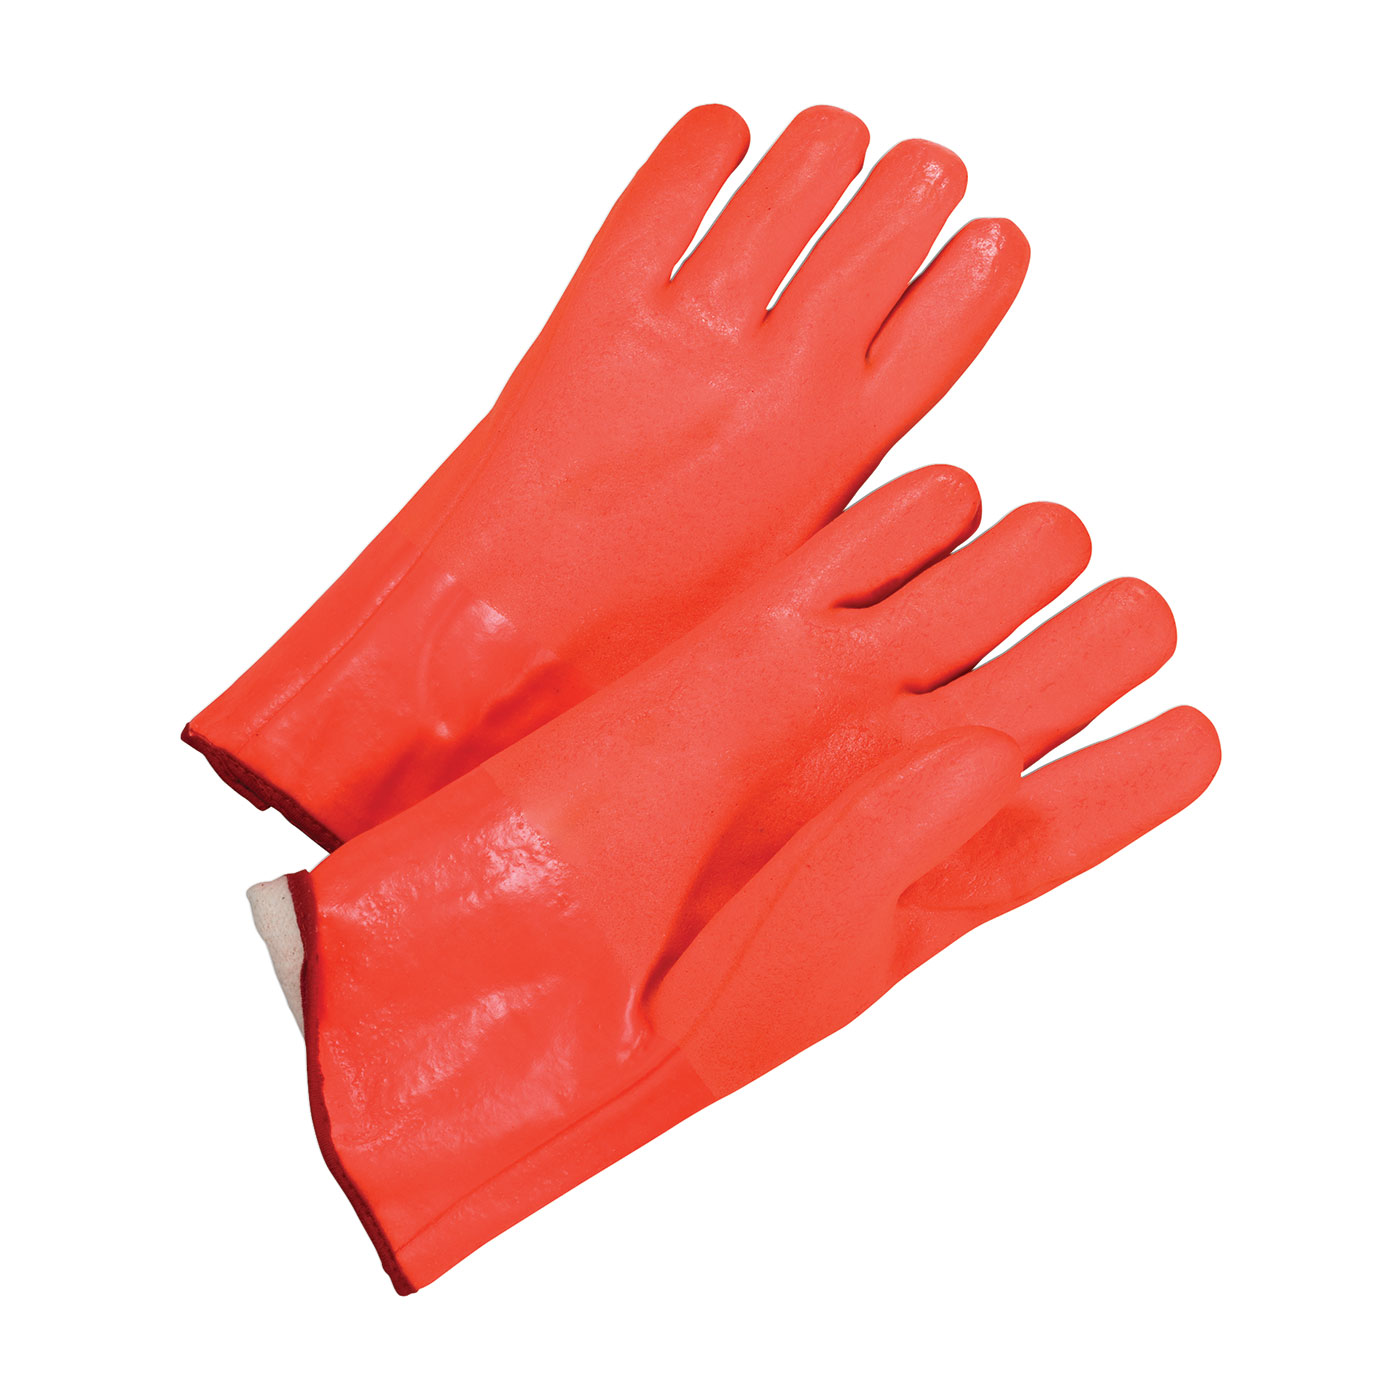 "PVC Dipped Glove with Foam Liner and Rough Finish - 12"", Orange, L"